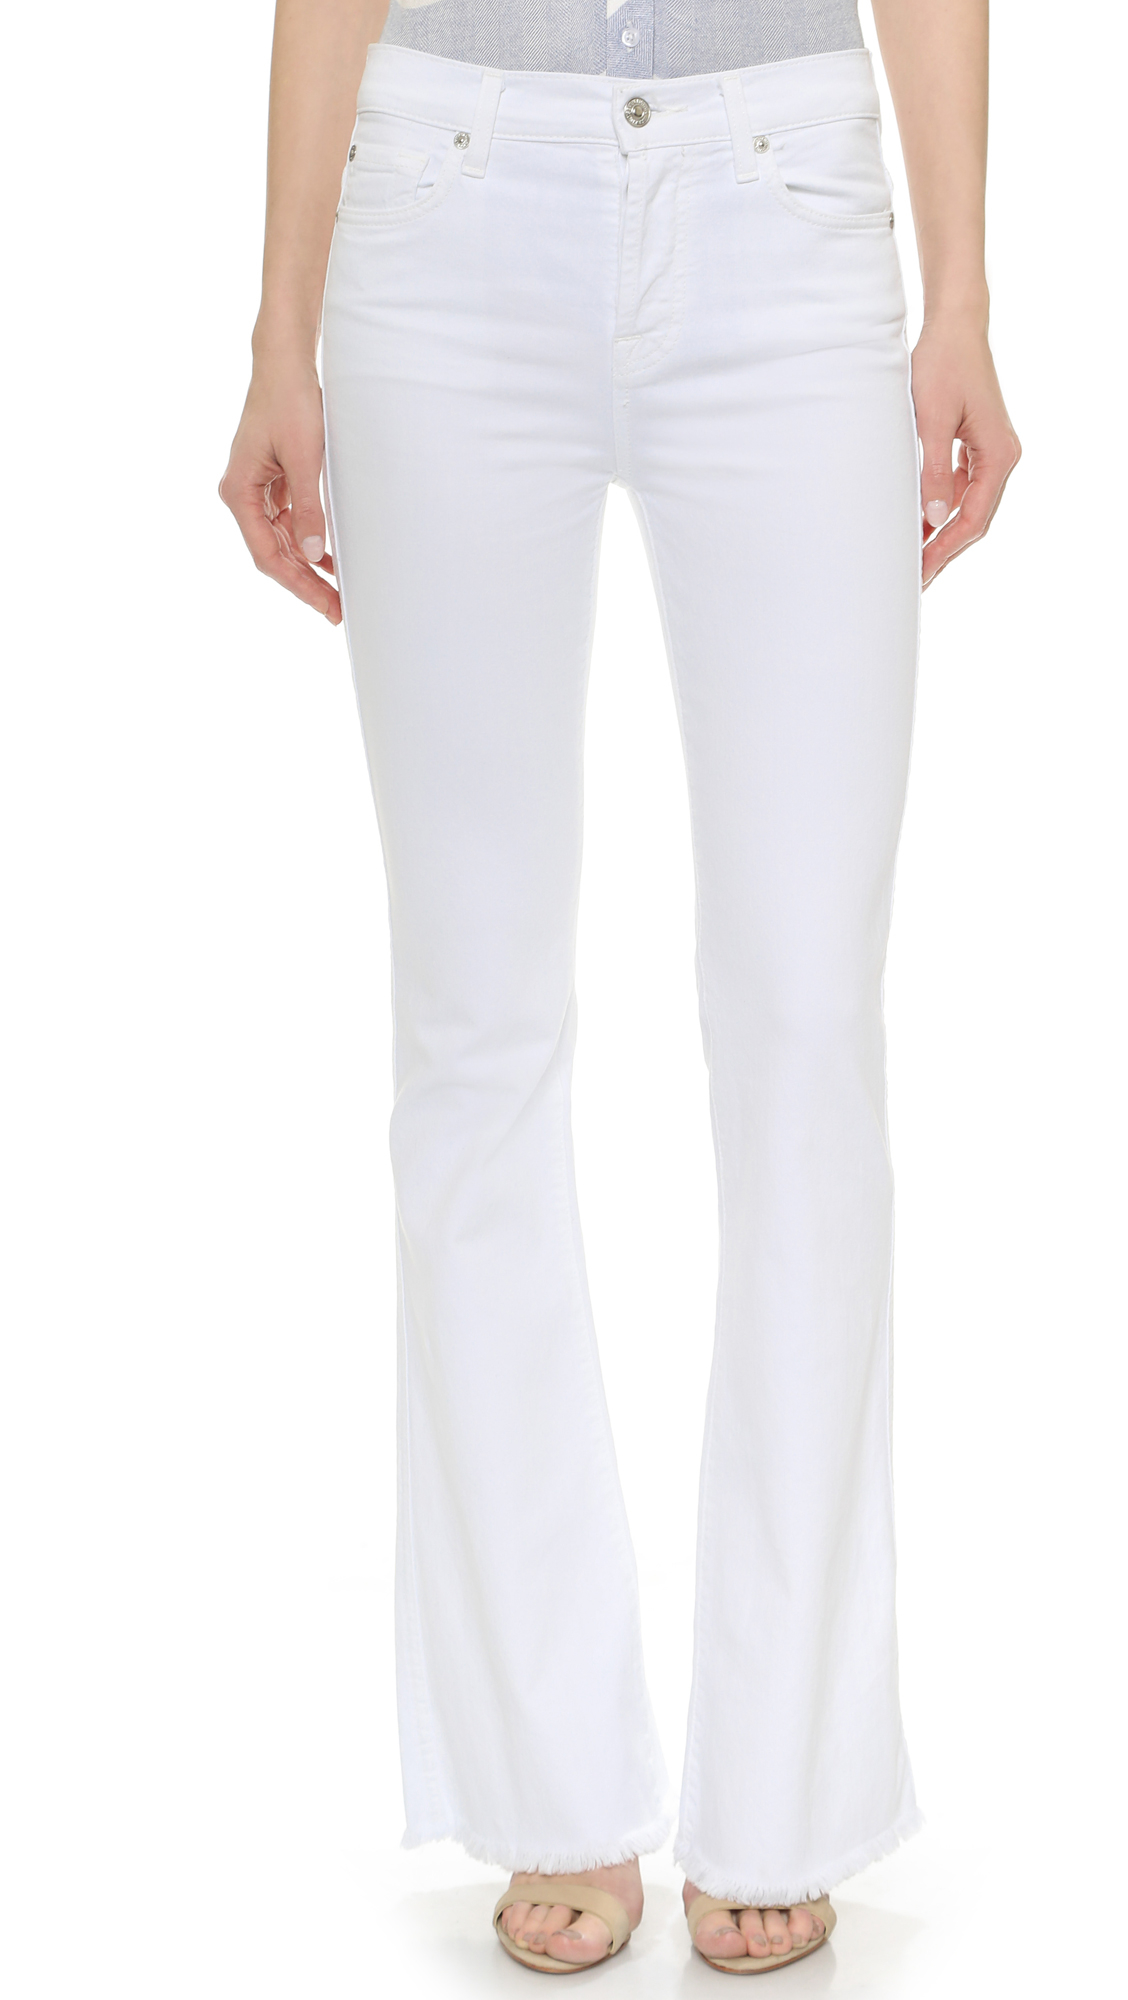 7 for all mankind High Waisted Vintage Flared Jeans - Runway White ...